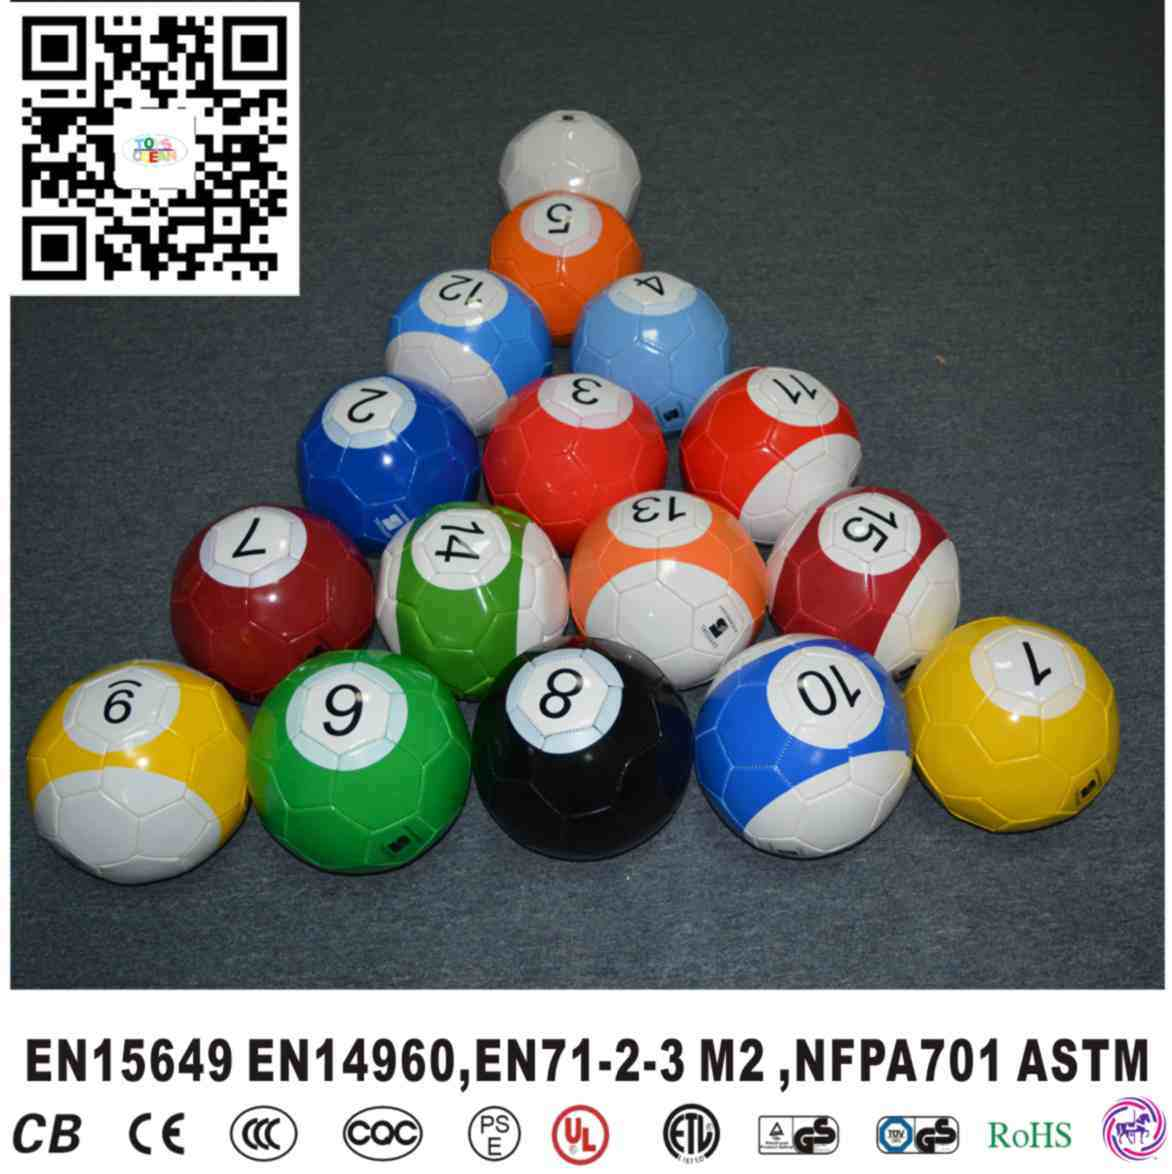 illustration pool rack position furian balls billiard stock depositphotos starting vector table